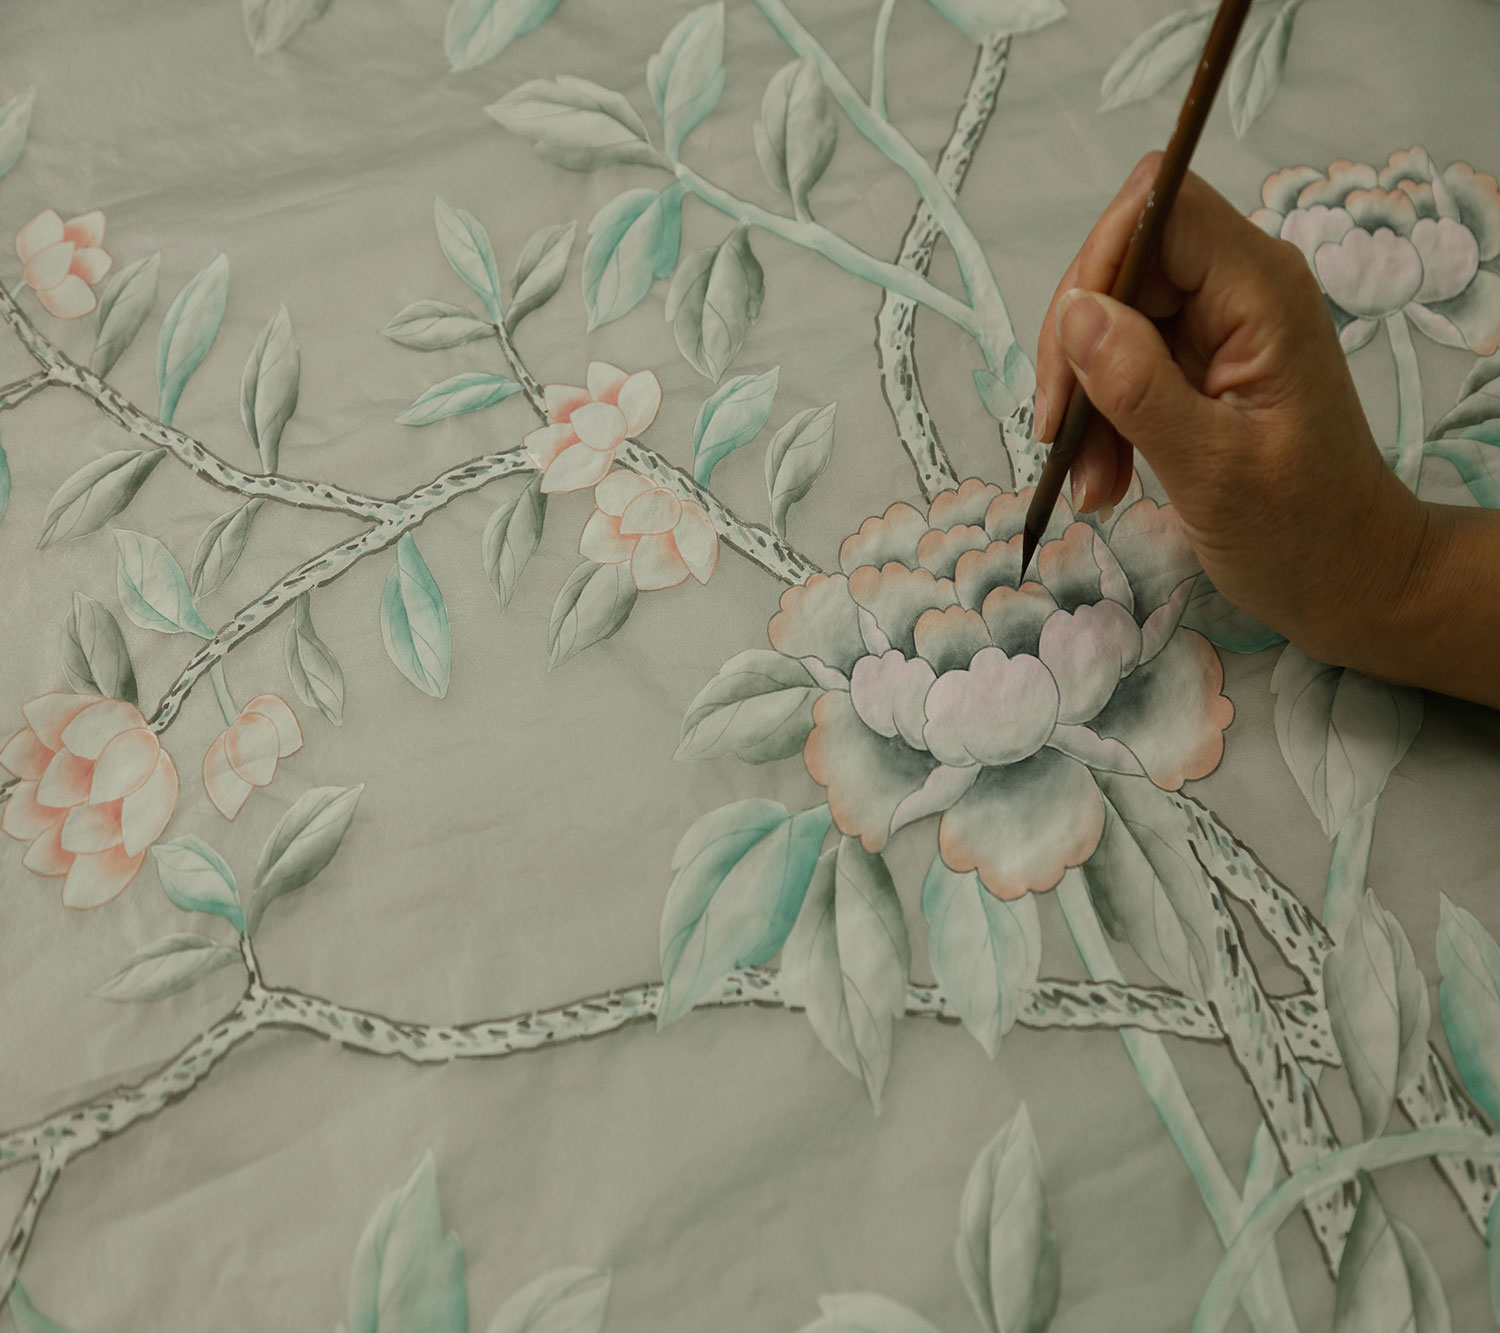 A painter adds color to Catherine Kwong's De Gournay wallpaper